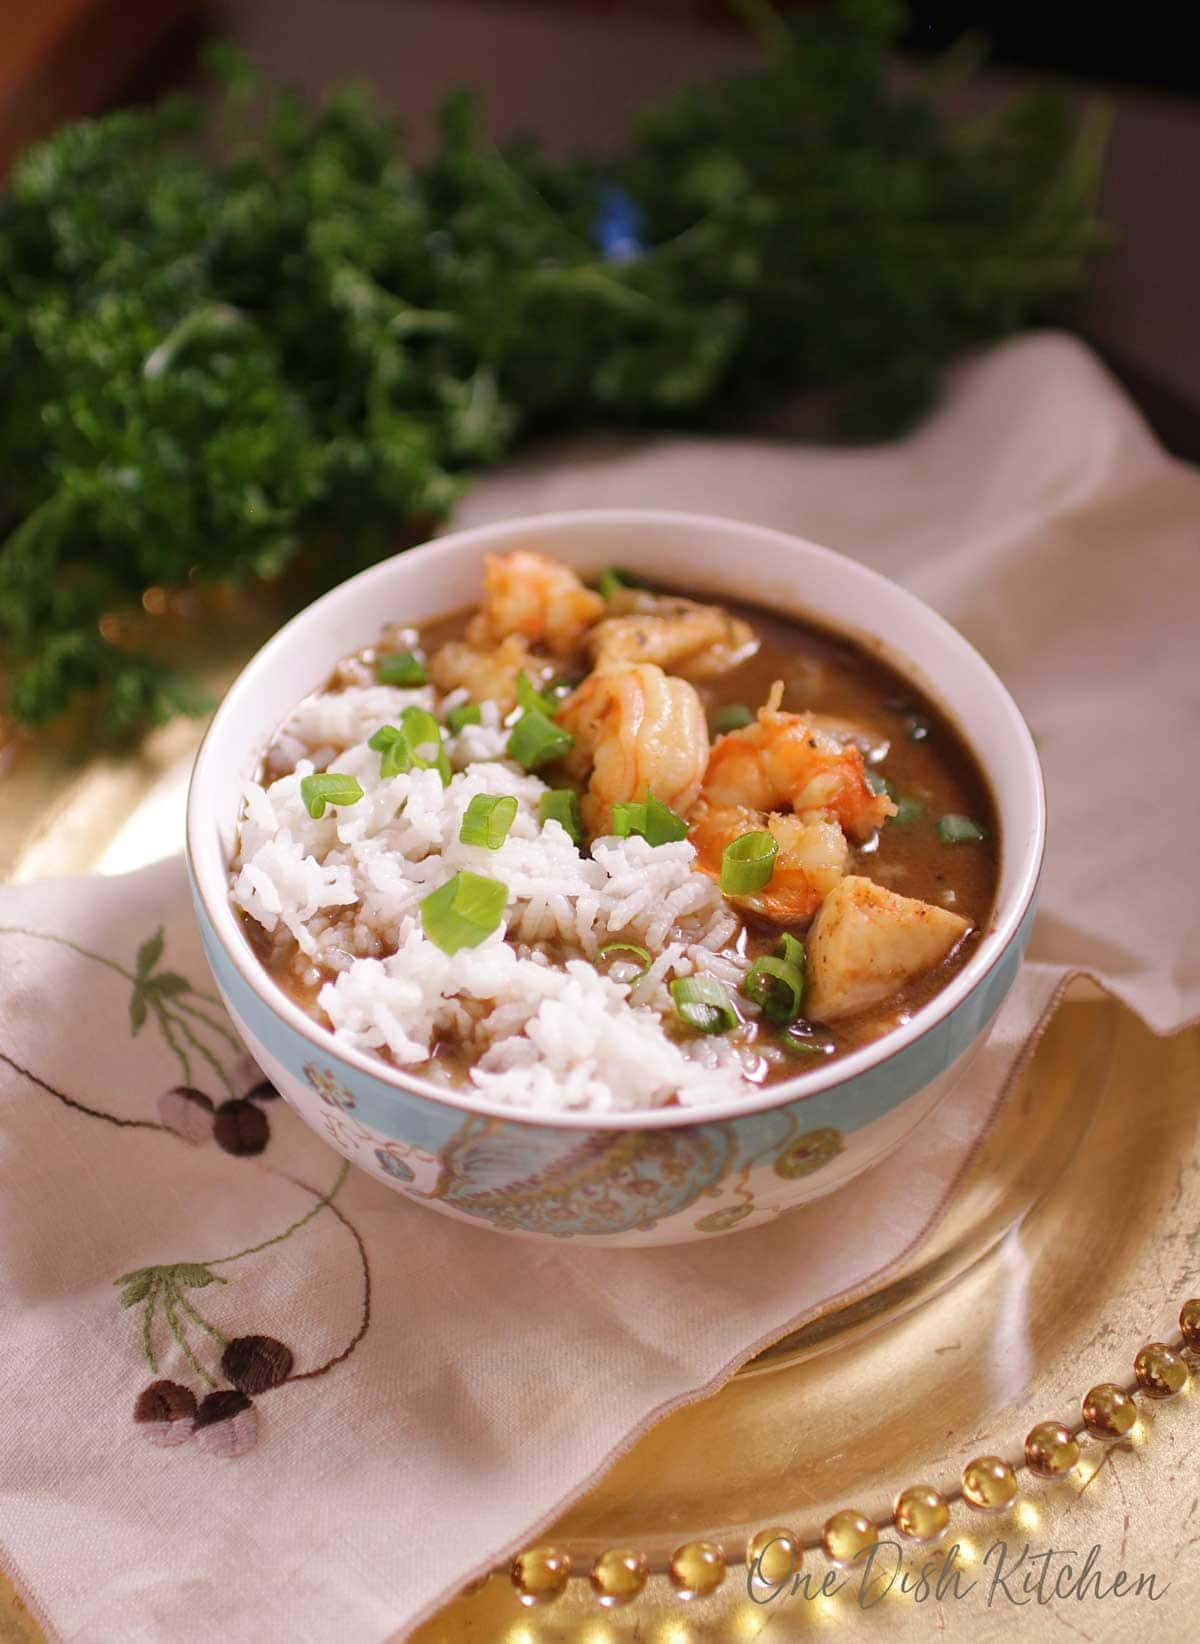 A bowl of gumbo with shrimp and white rice on a tray with parsley in the background.